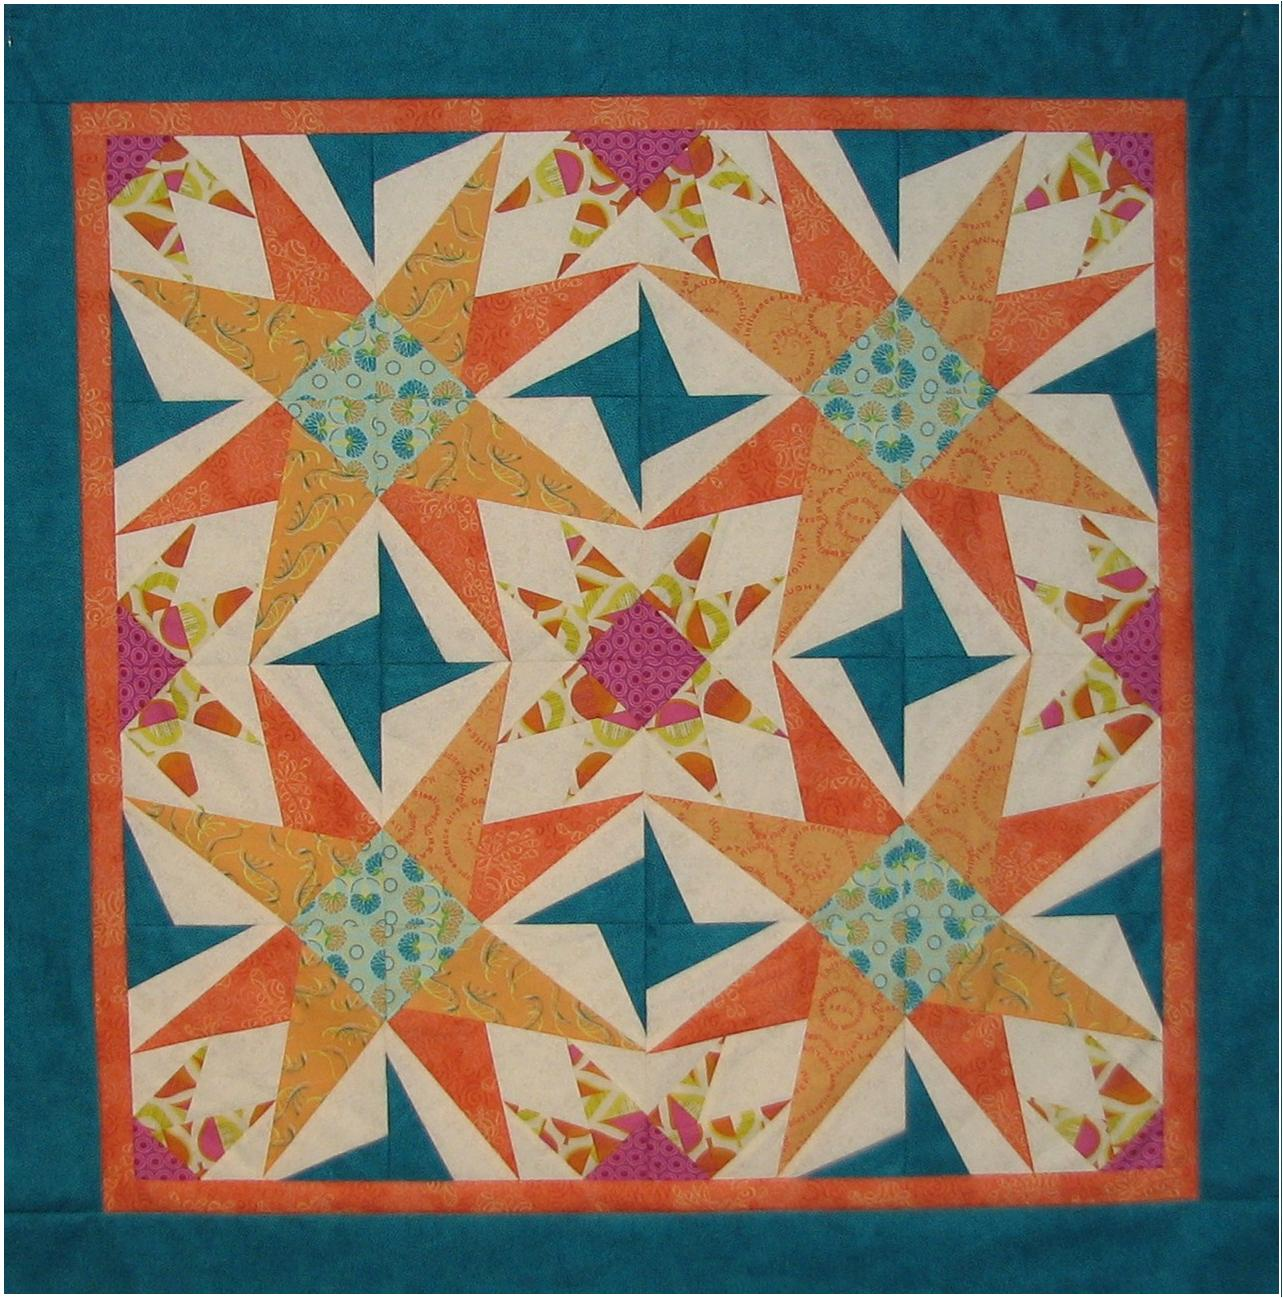 Quilt As You Go Patterns Awesome Design Inspiration